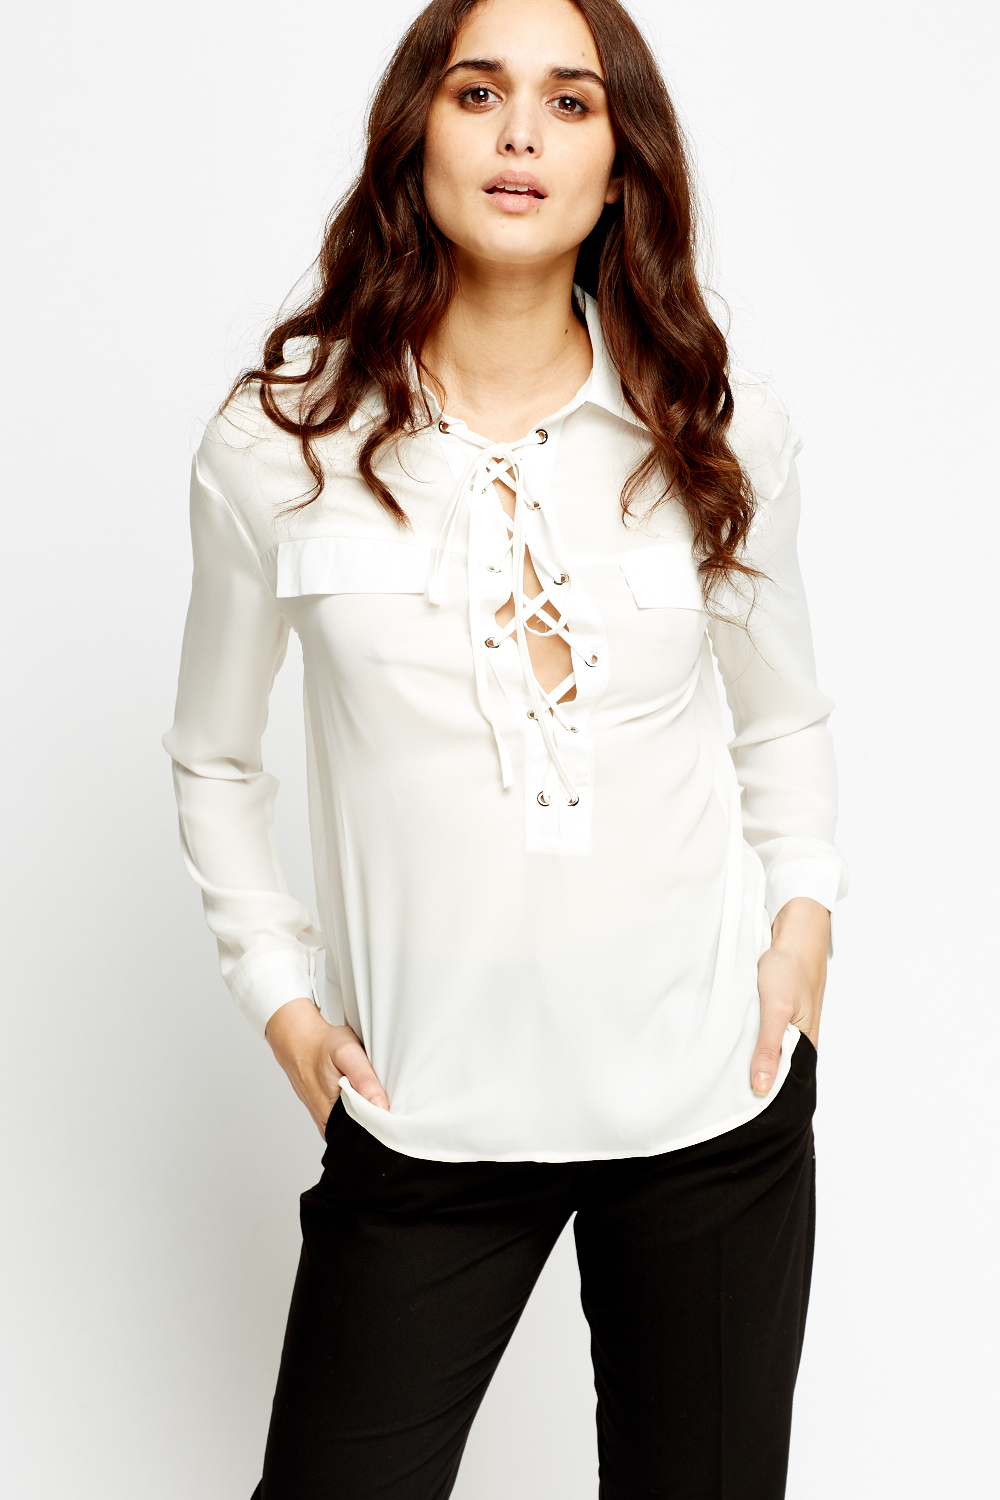 a6496aed2e Lace Up Front Blouse - Just £2